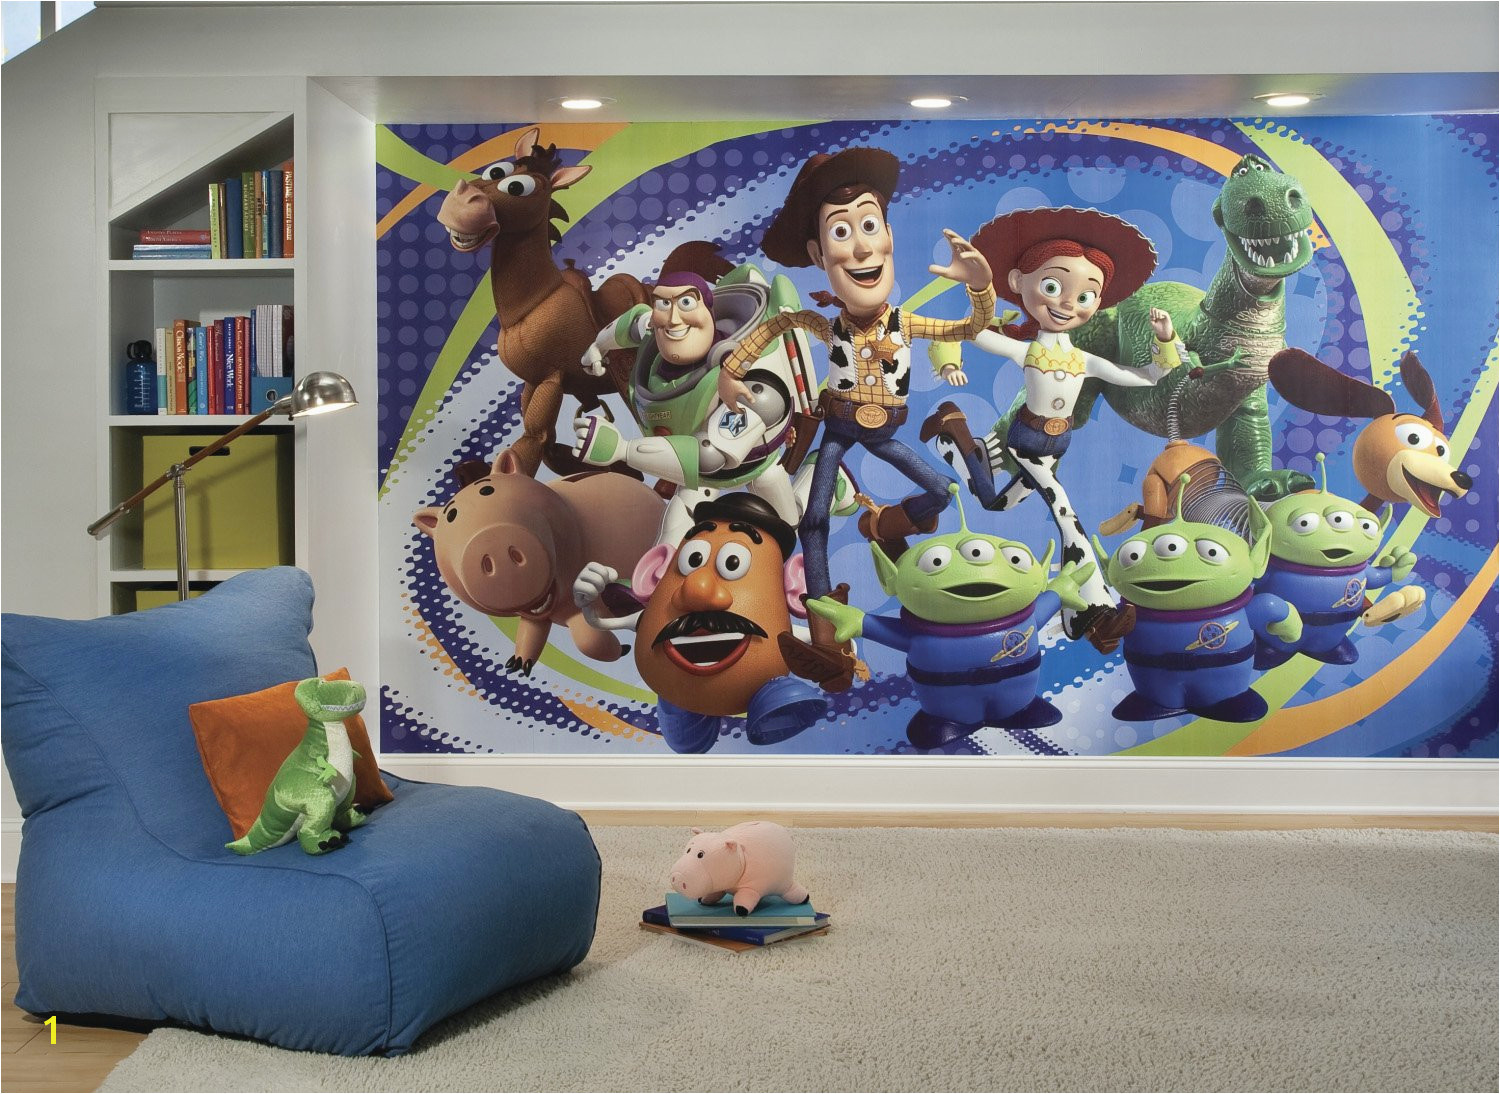 Disney Pixar Toy Story 3 Prepasted Wall Mural 10 5 W x 6 H Installed